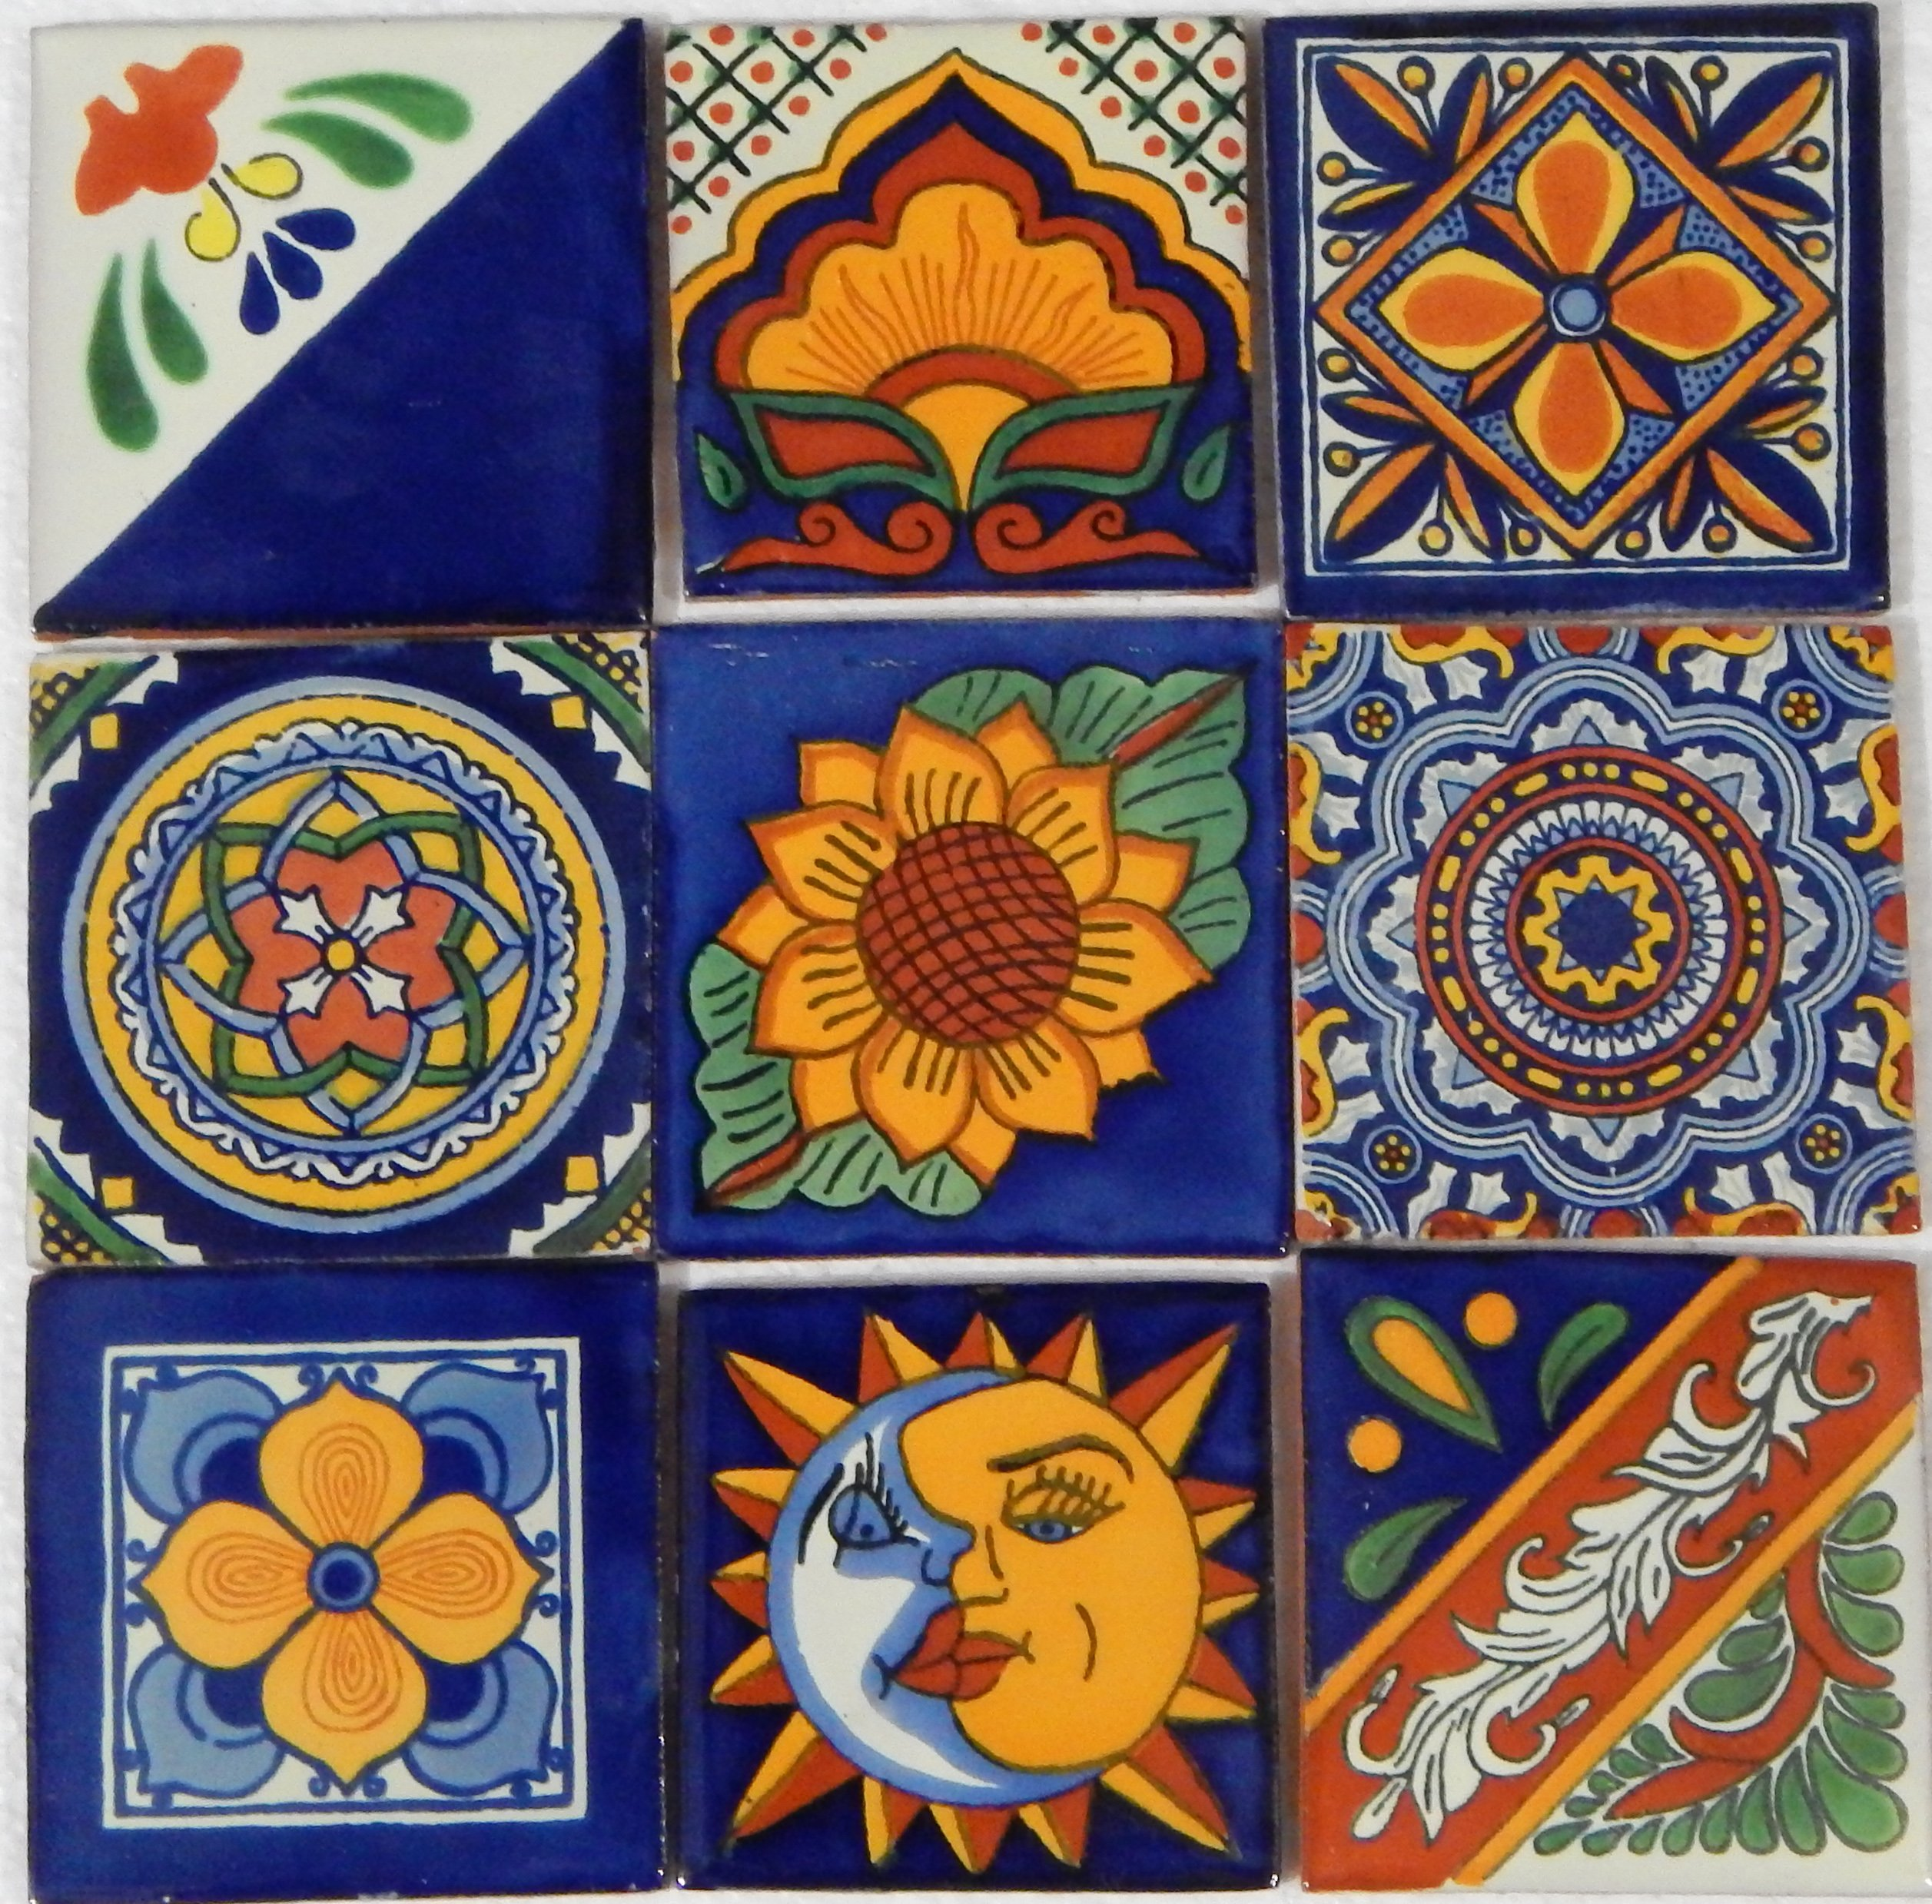 Color y Tradicion 9 Hand Painted Talavera Mexican Tiles 4''x 4'' by Color y Tradicion